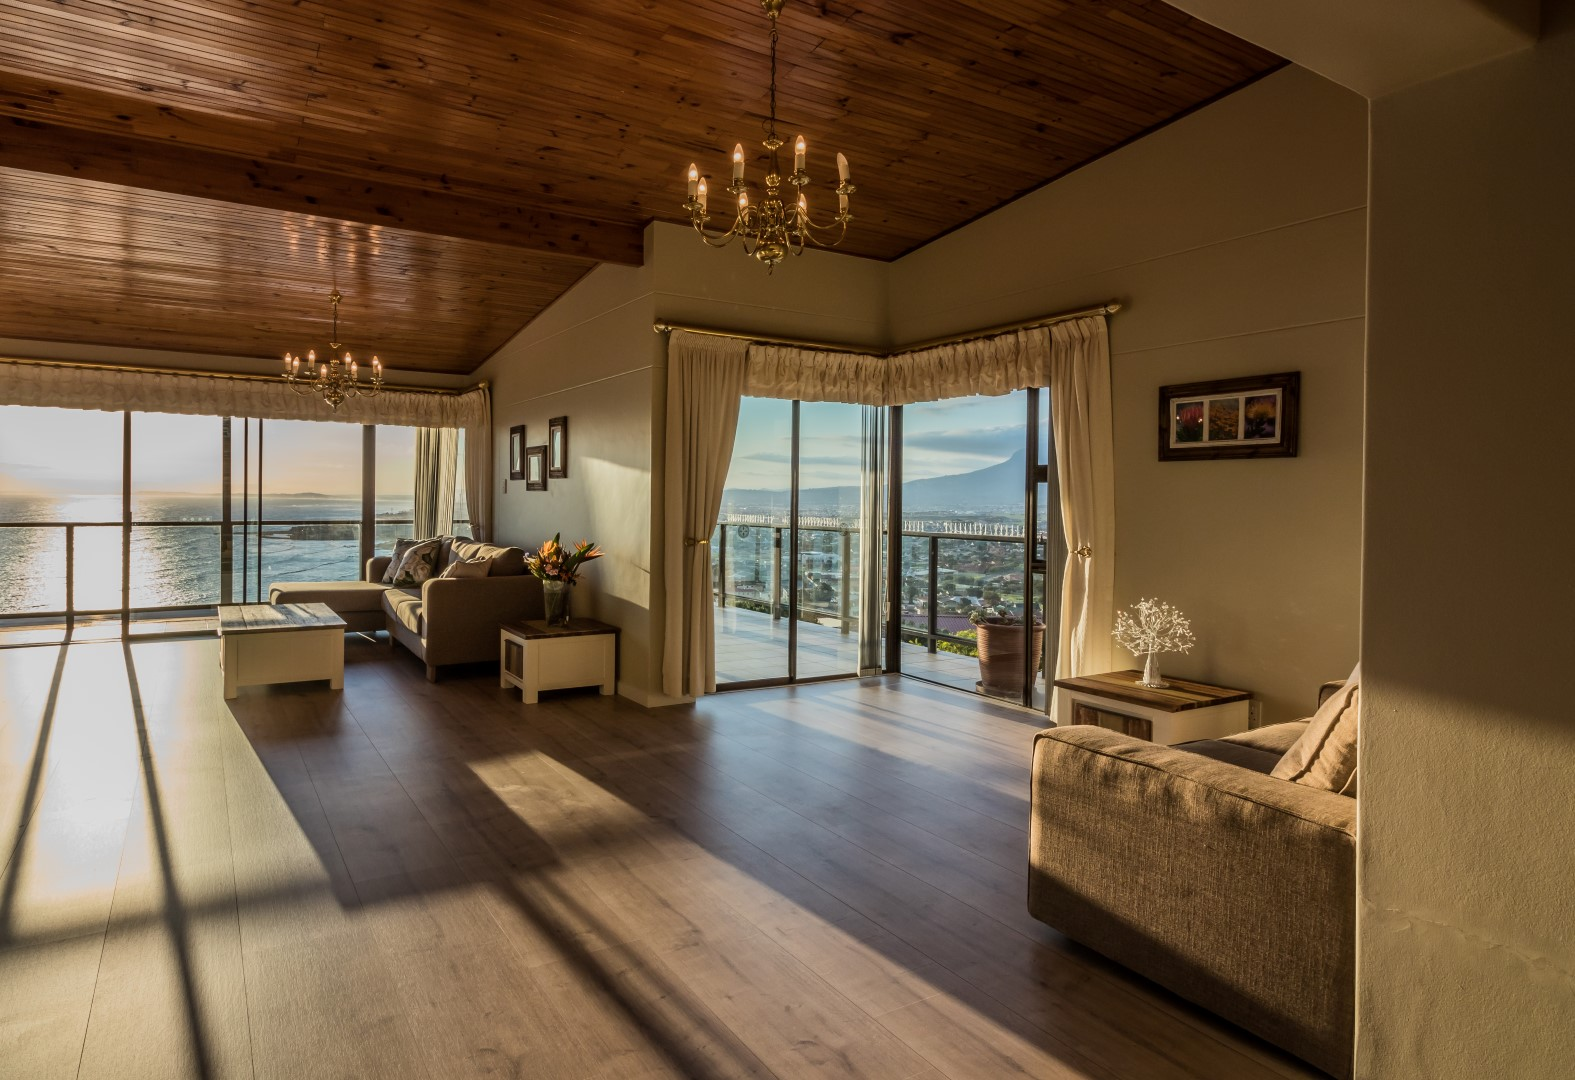 Self catering accommodation - Panoramic sea views from the Penthouse